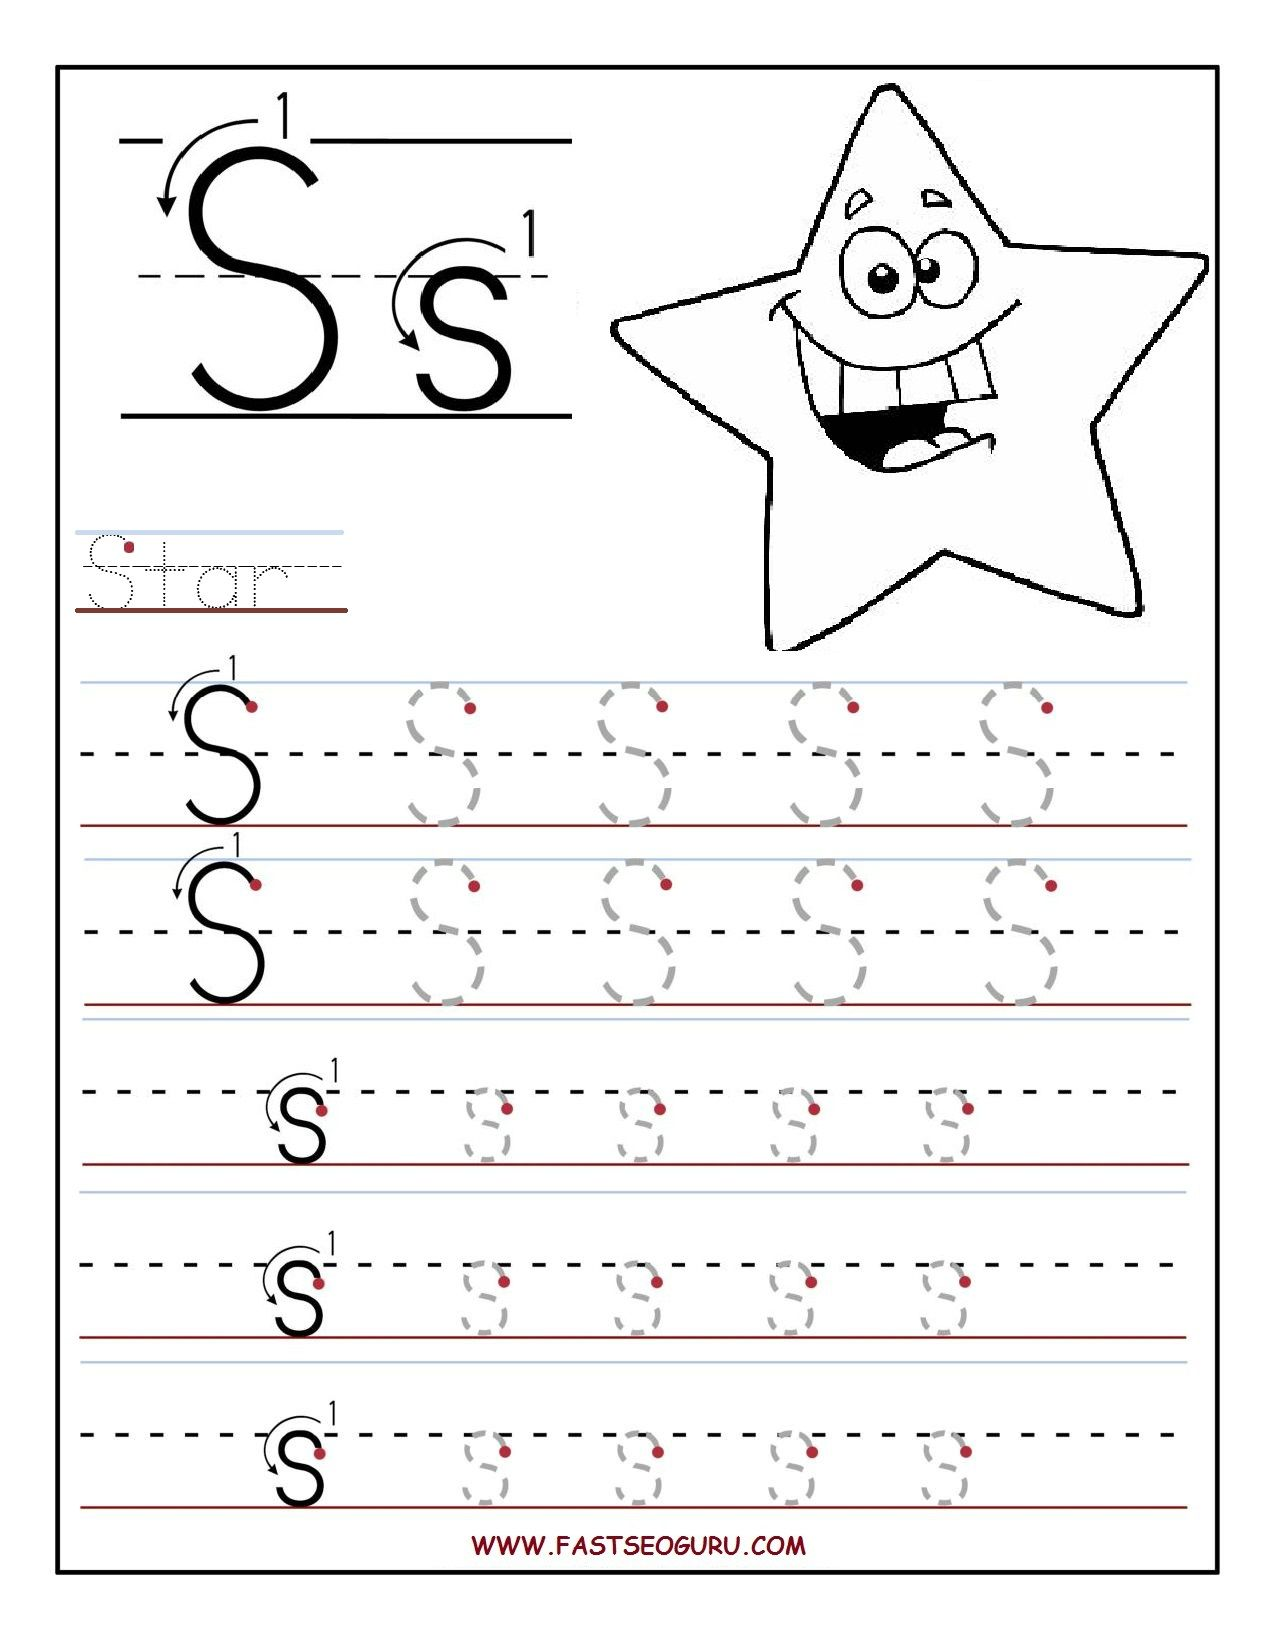 Printable letter S tracing worksheets for preschool | For the ...